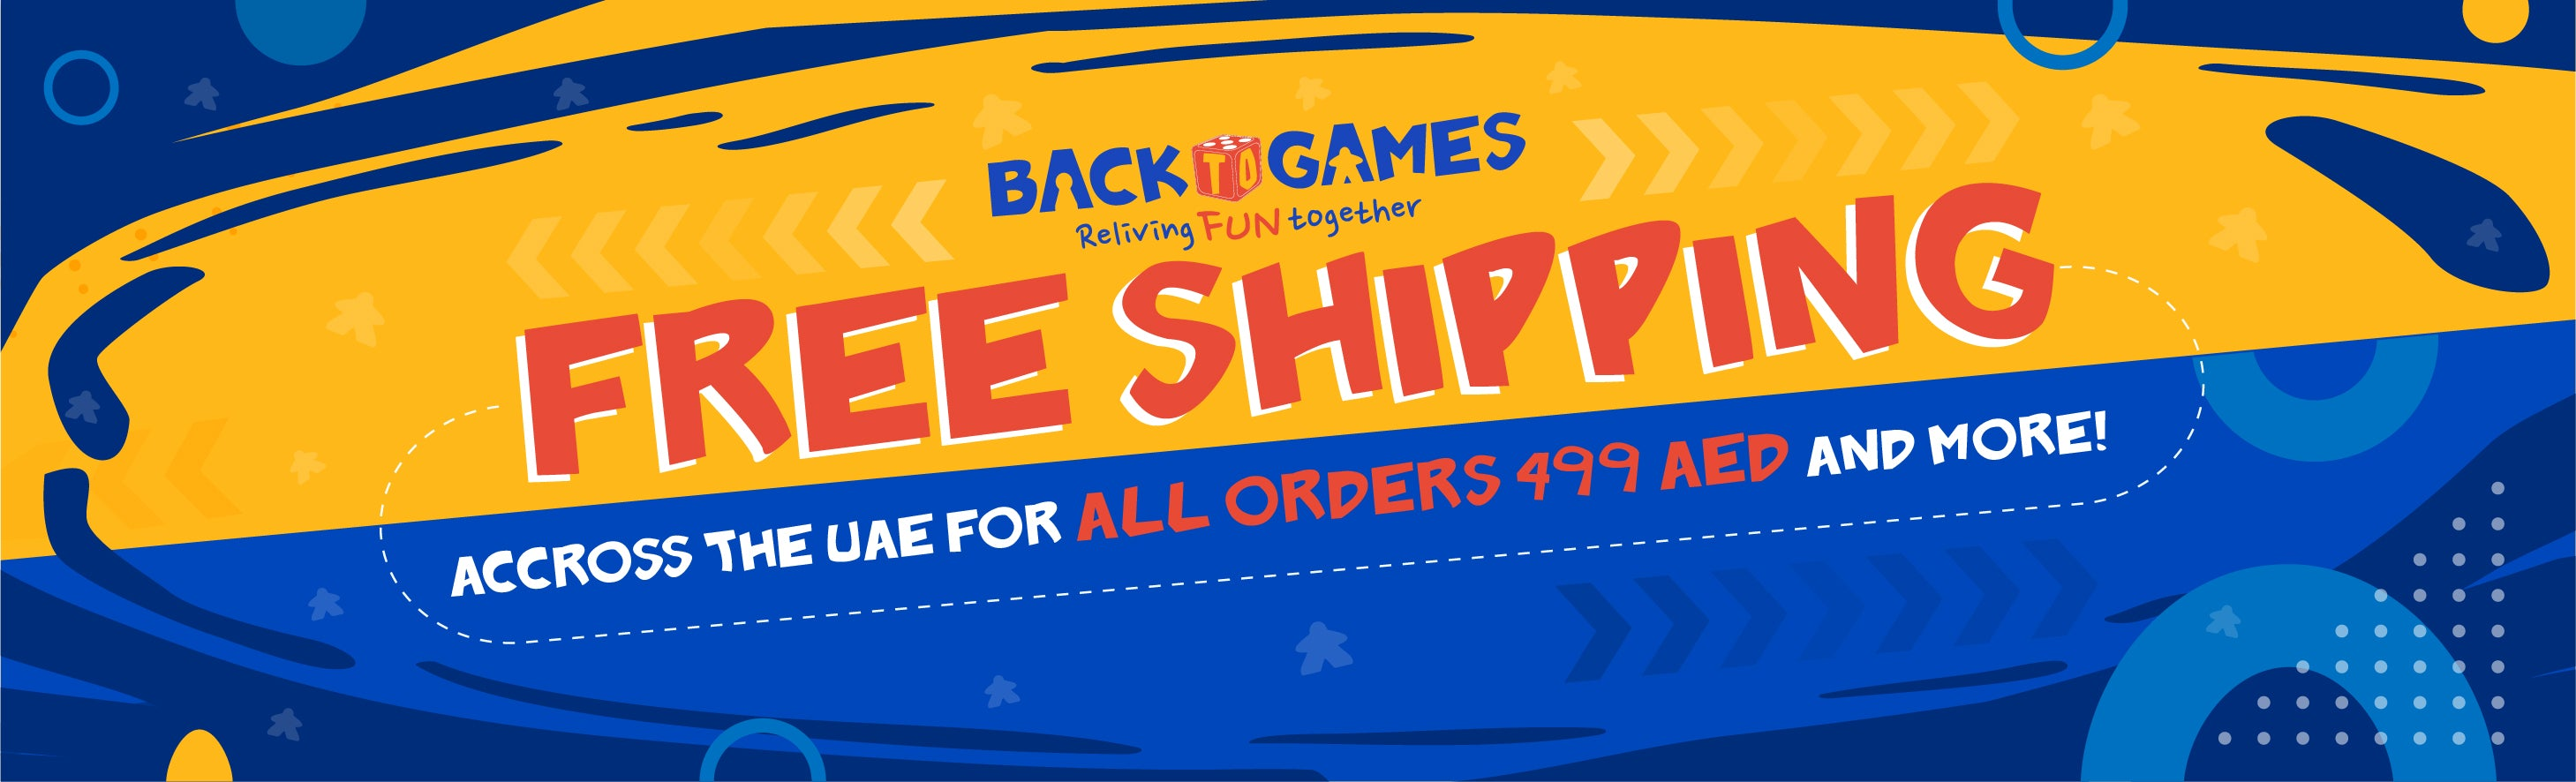 Back to Games - Board Games, Card Games, Miniature, Geek, Hobbygaming